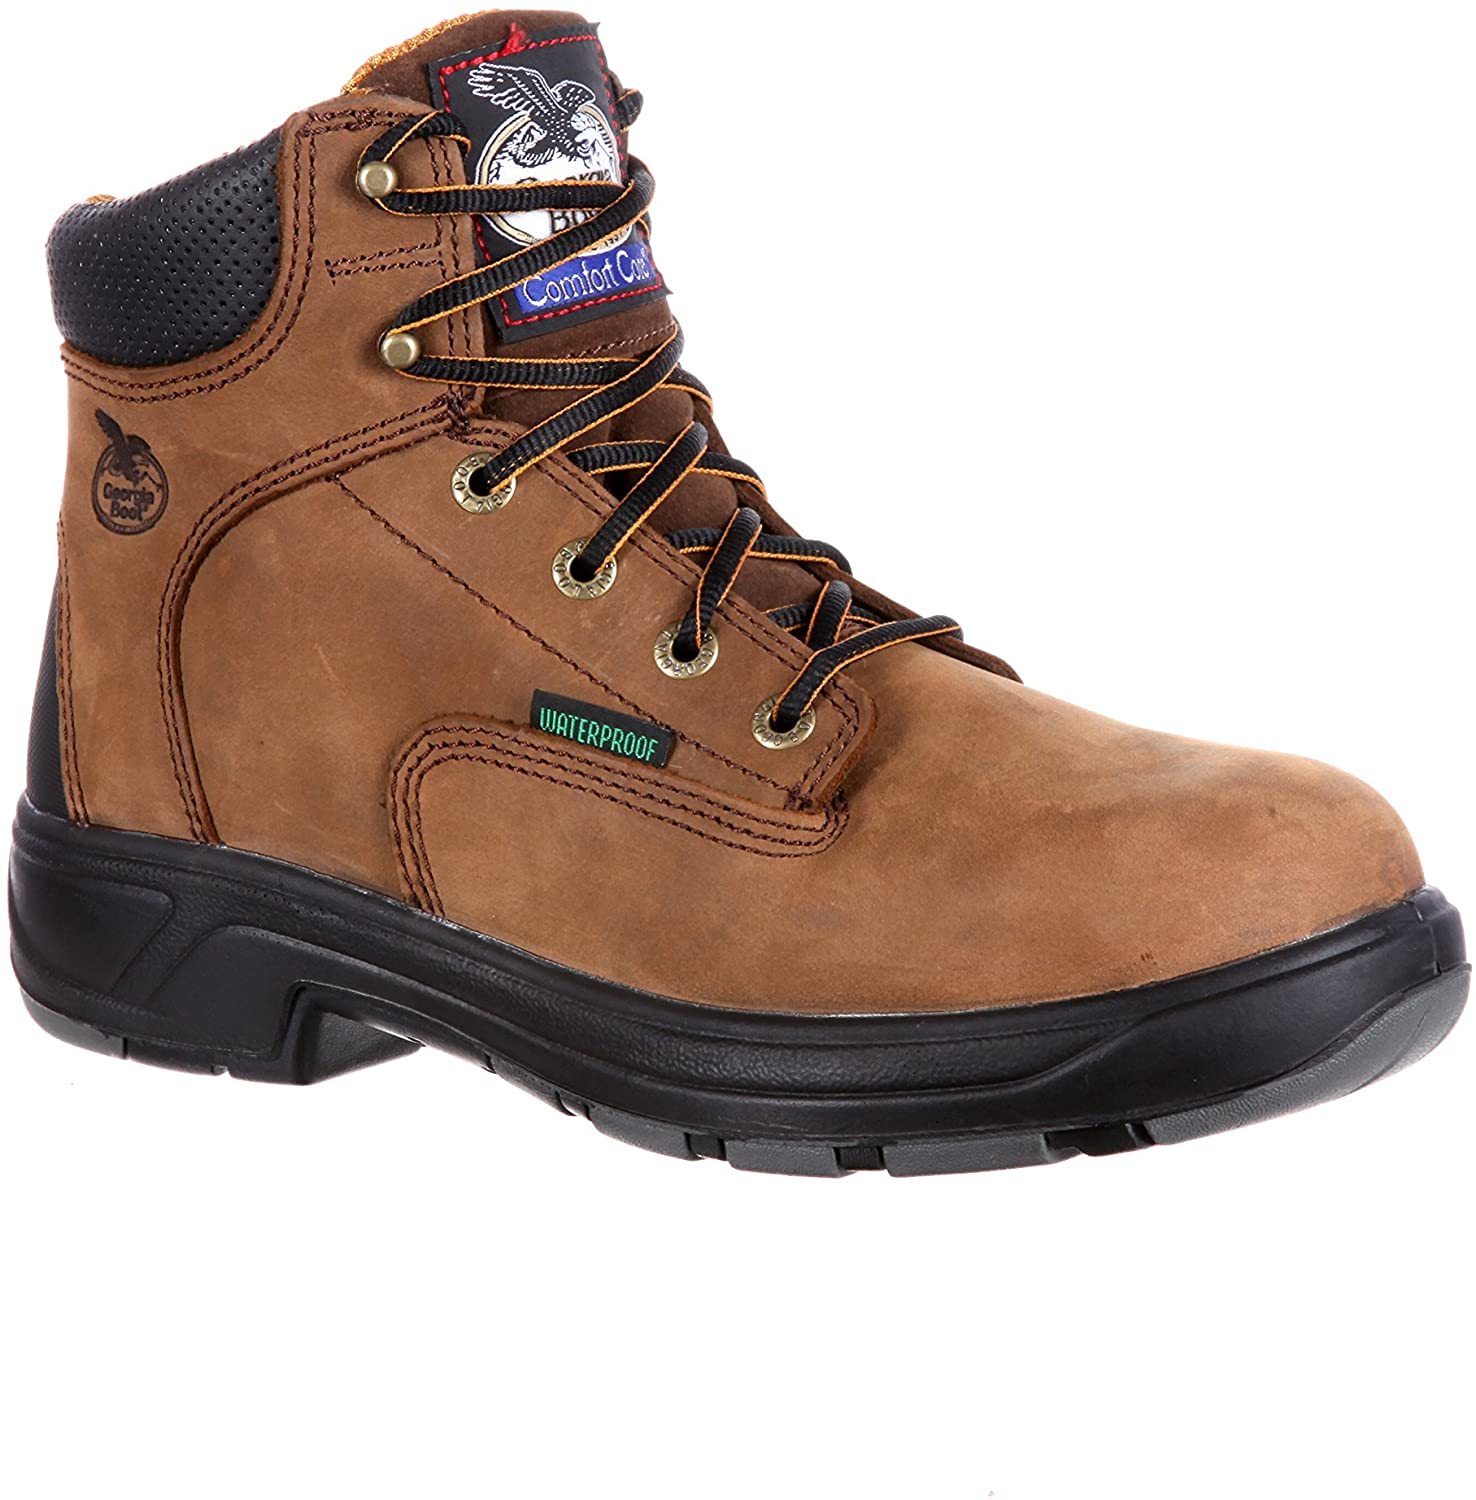 Georgia 6 FLXpoint Waterproof Composite Toe ST Work Boot-G6644